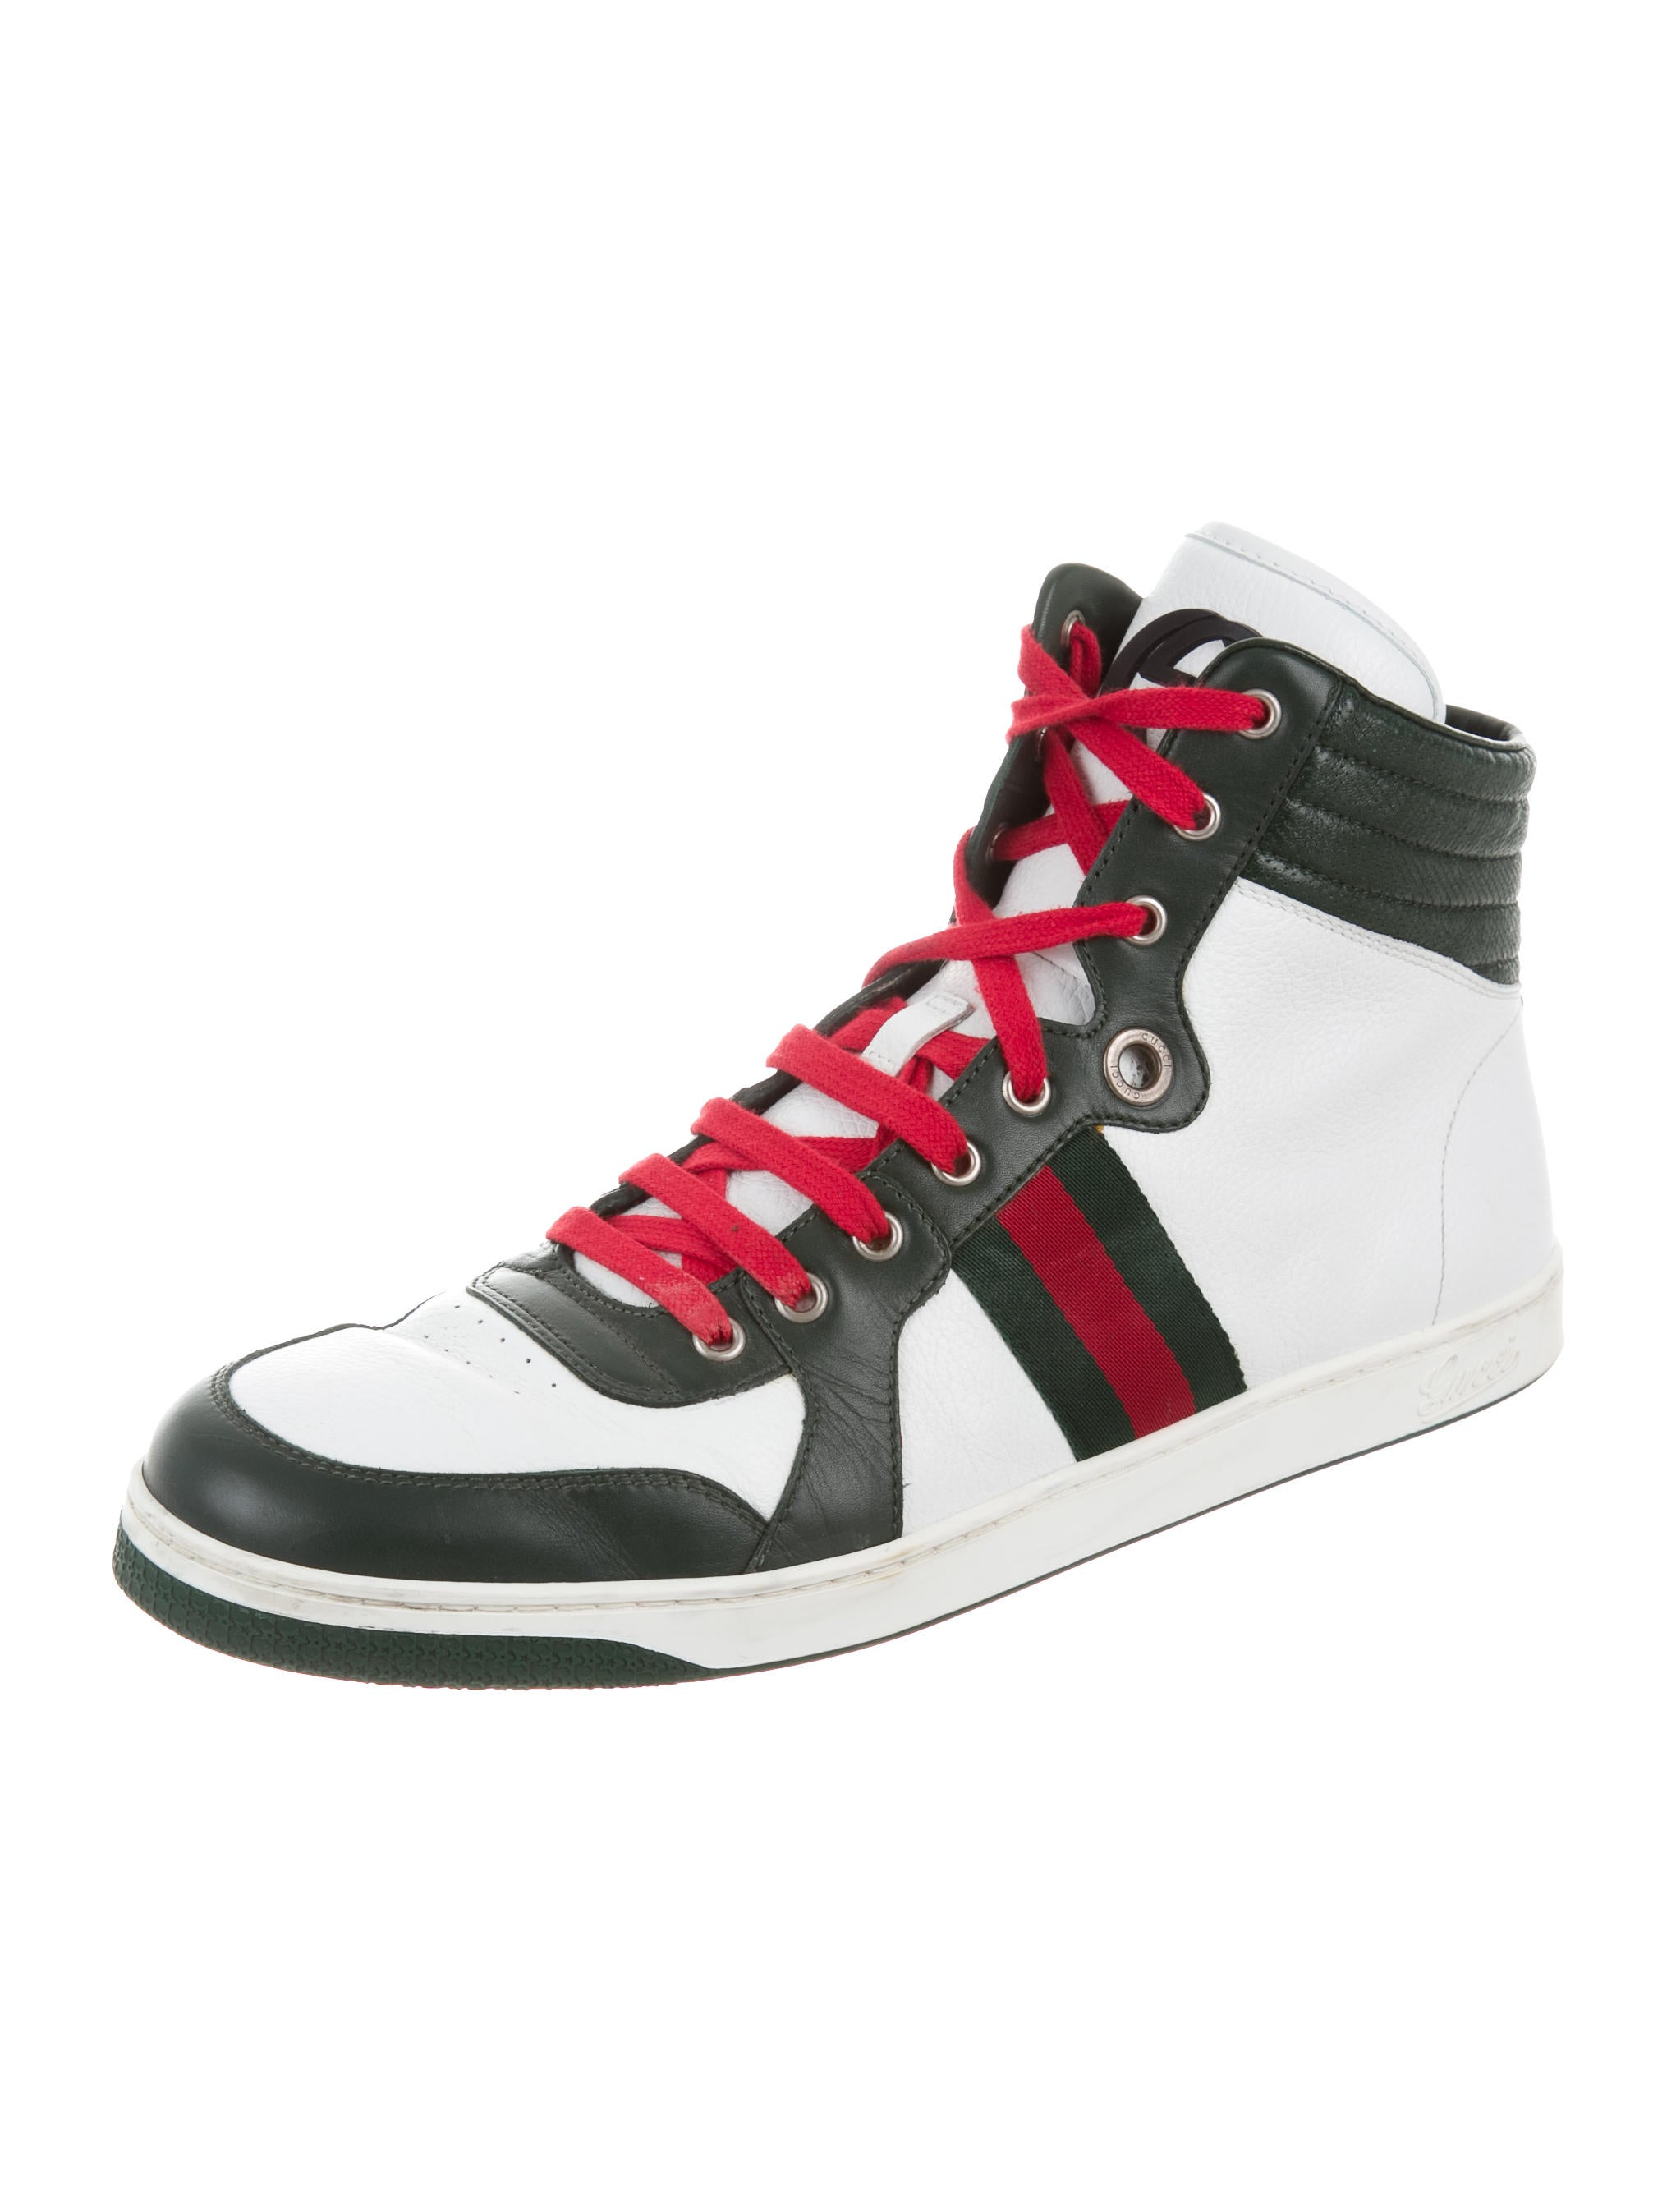 gucci high top web sneakers shoes guc141721 the realreal. Black Bedroom Furniture Sets. Home Design Ideas